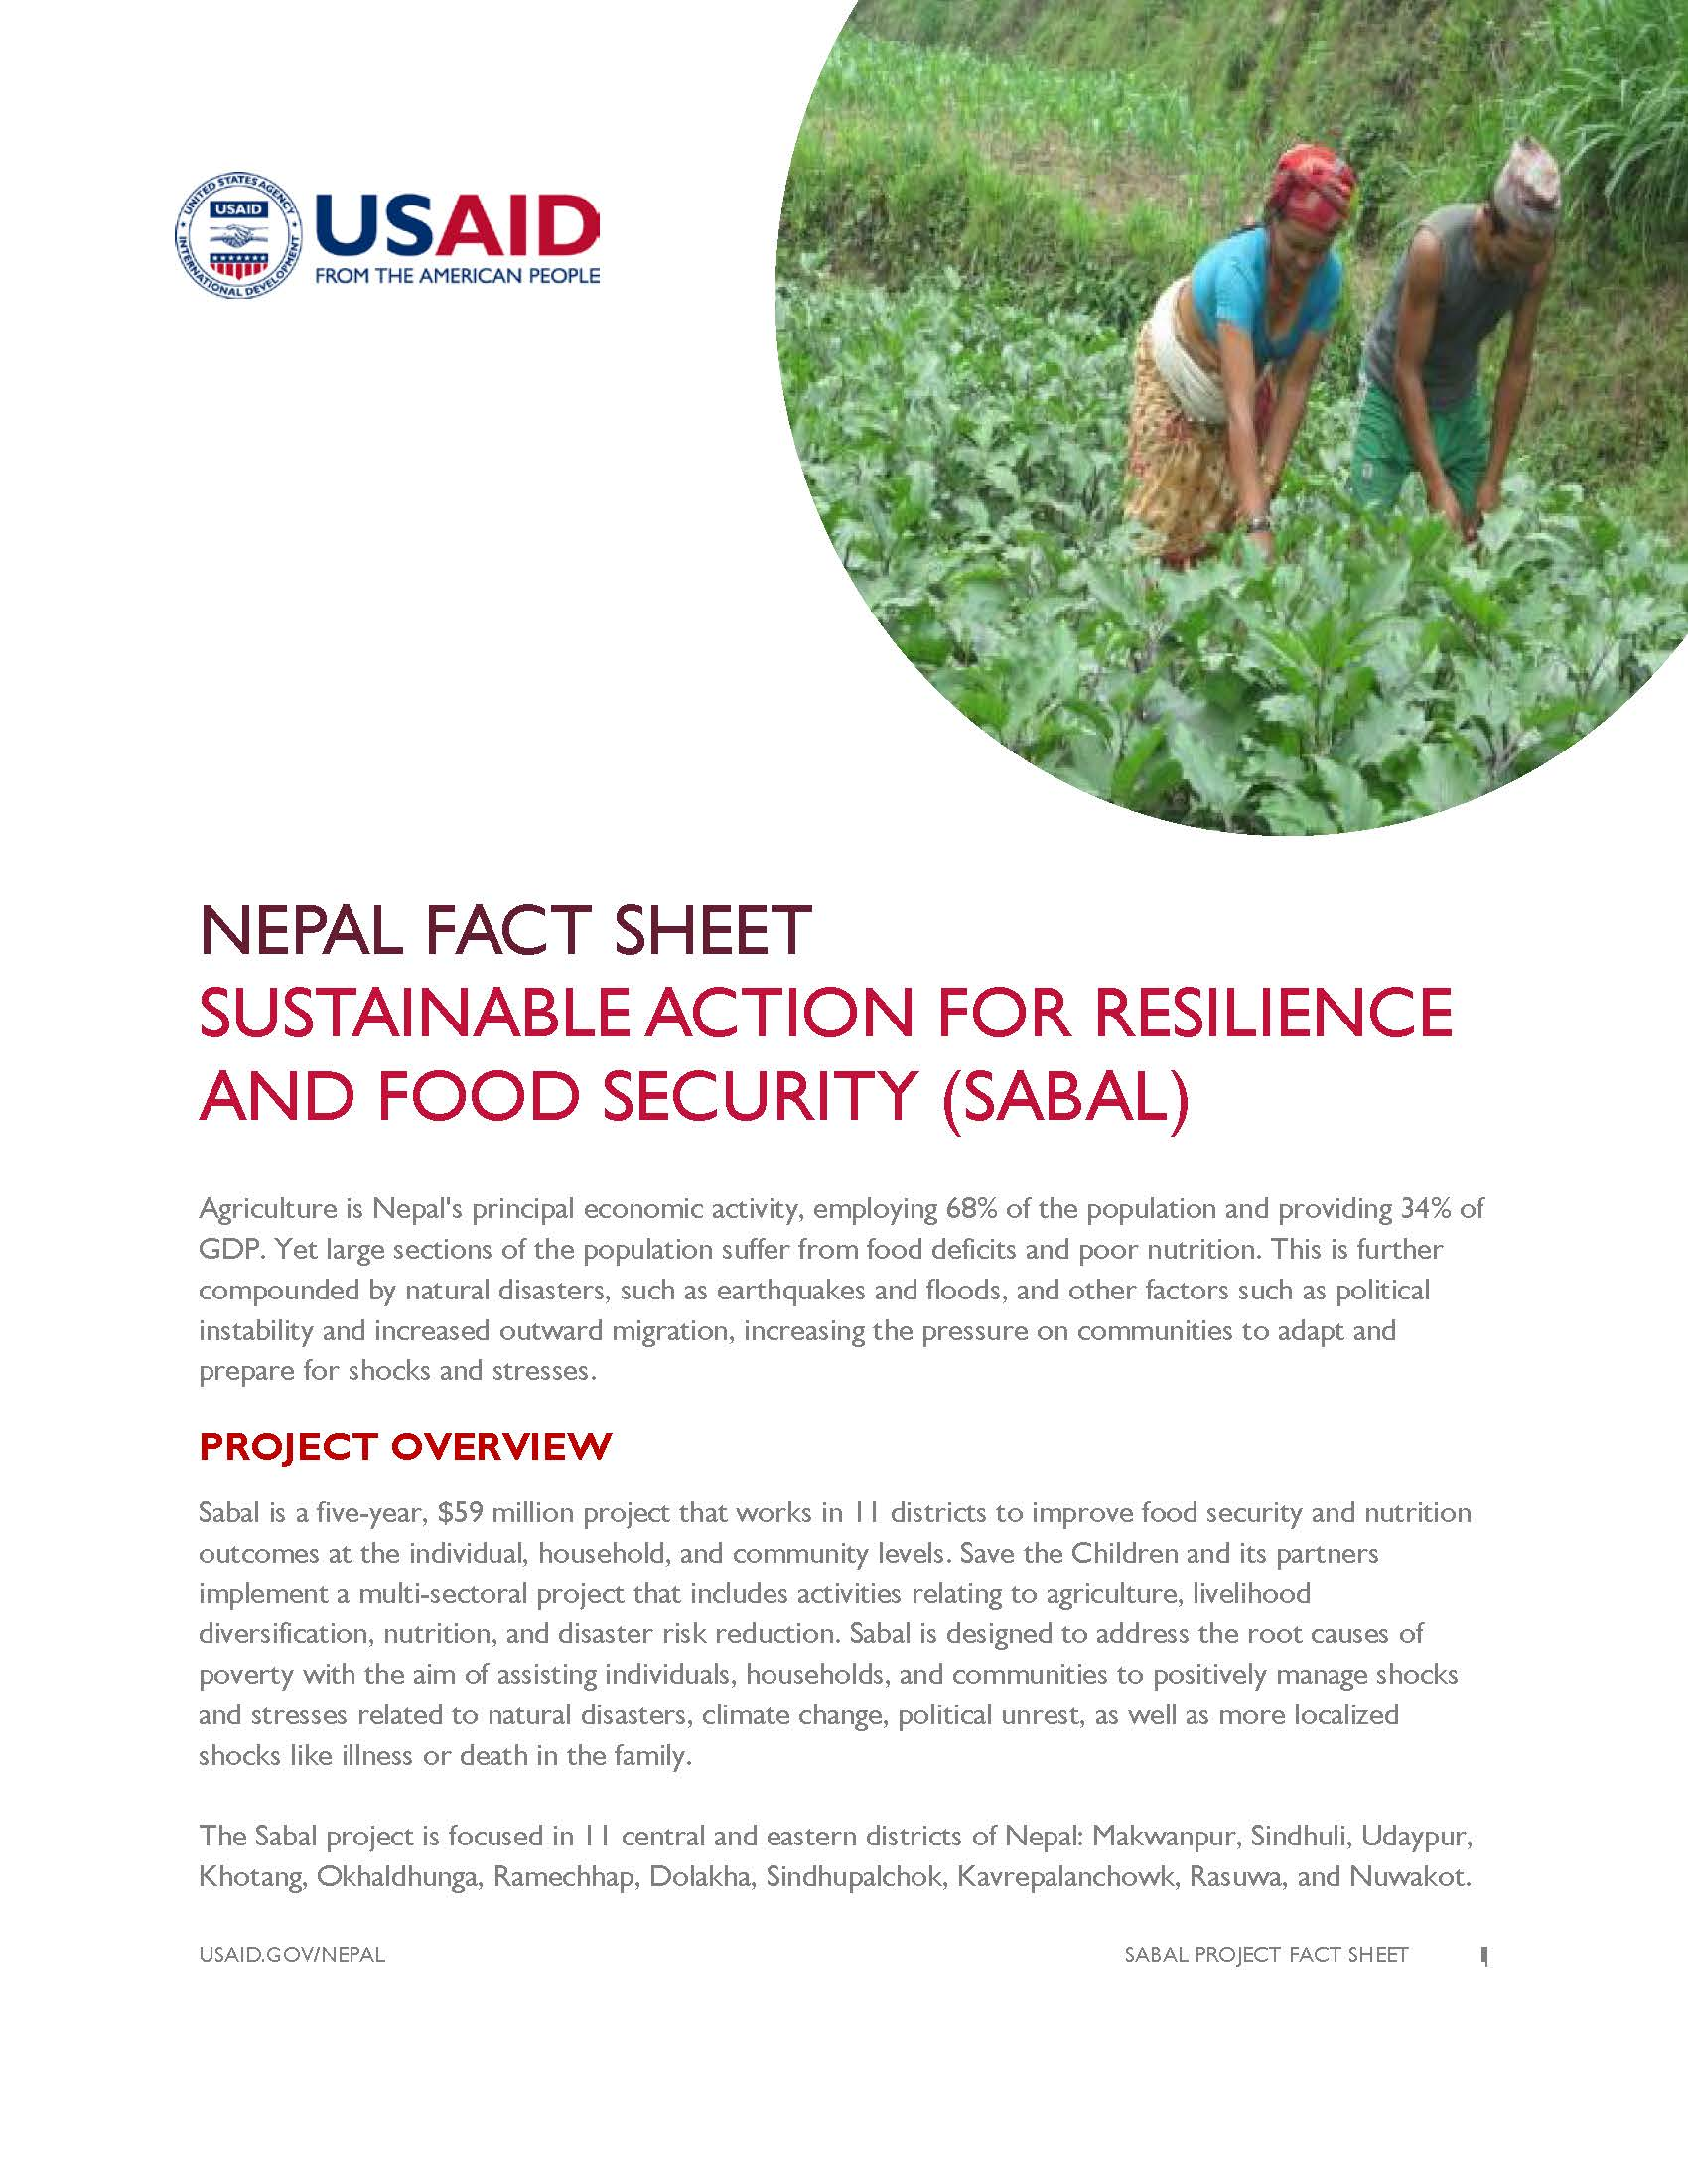 FACT SHEET: Sustainable Action for Resilience and Food Security (SABAL)